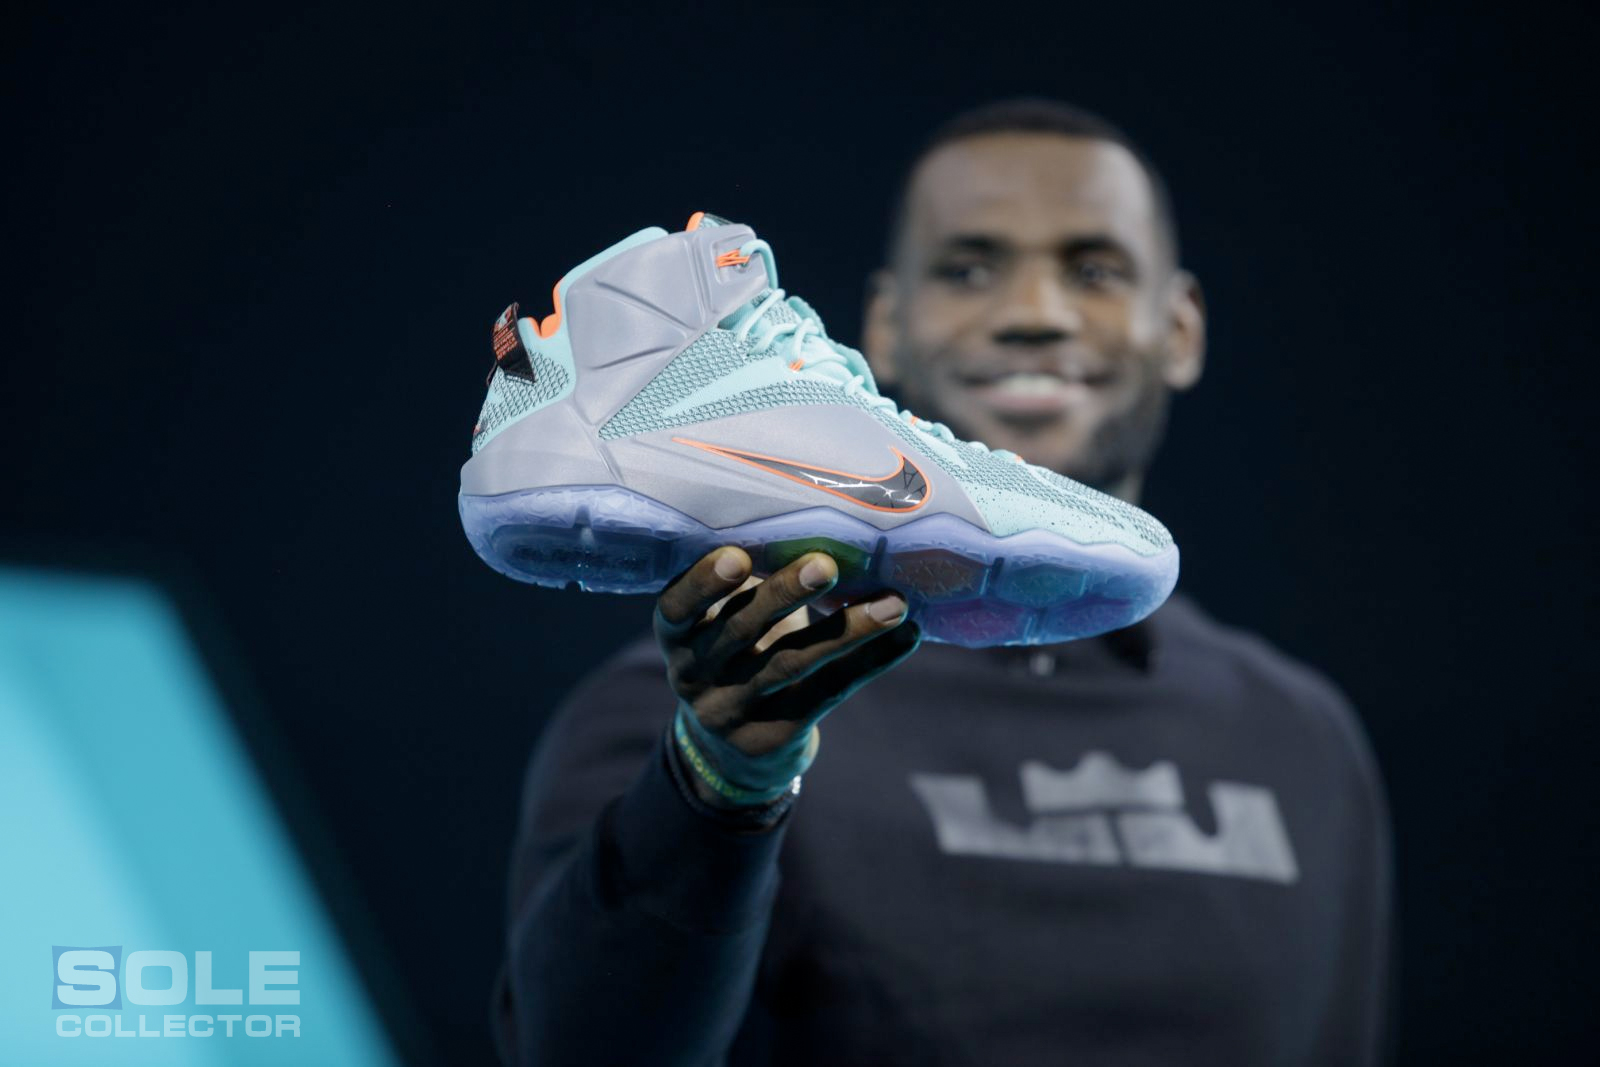 99a8e3135f0 LeBron James Talks Retroing His Sneakers and Lessons From Barely Wearing  His Last Signature Shoes On Court